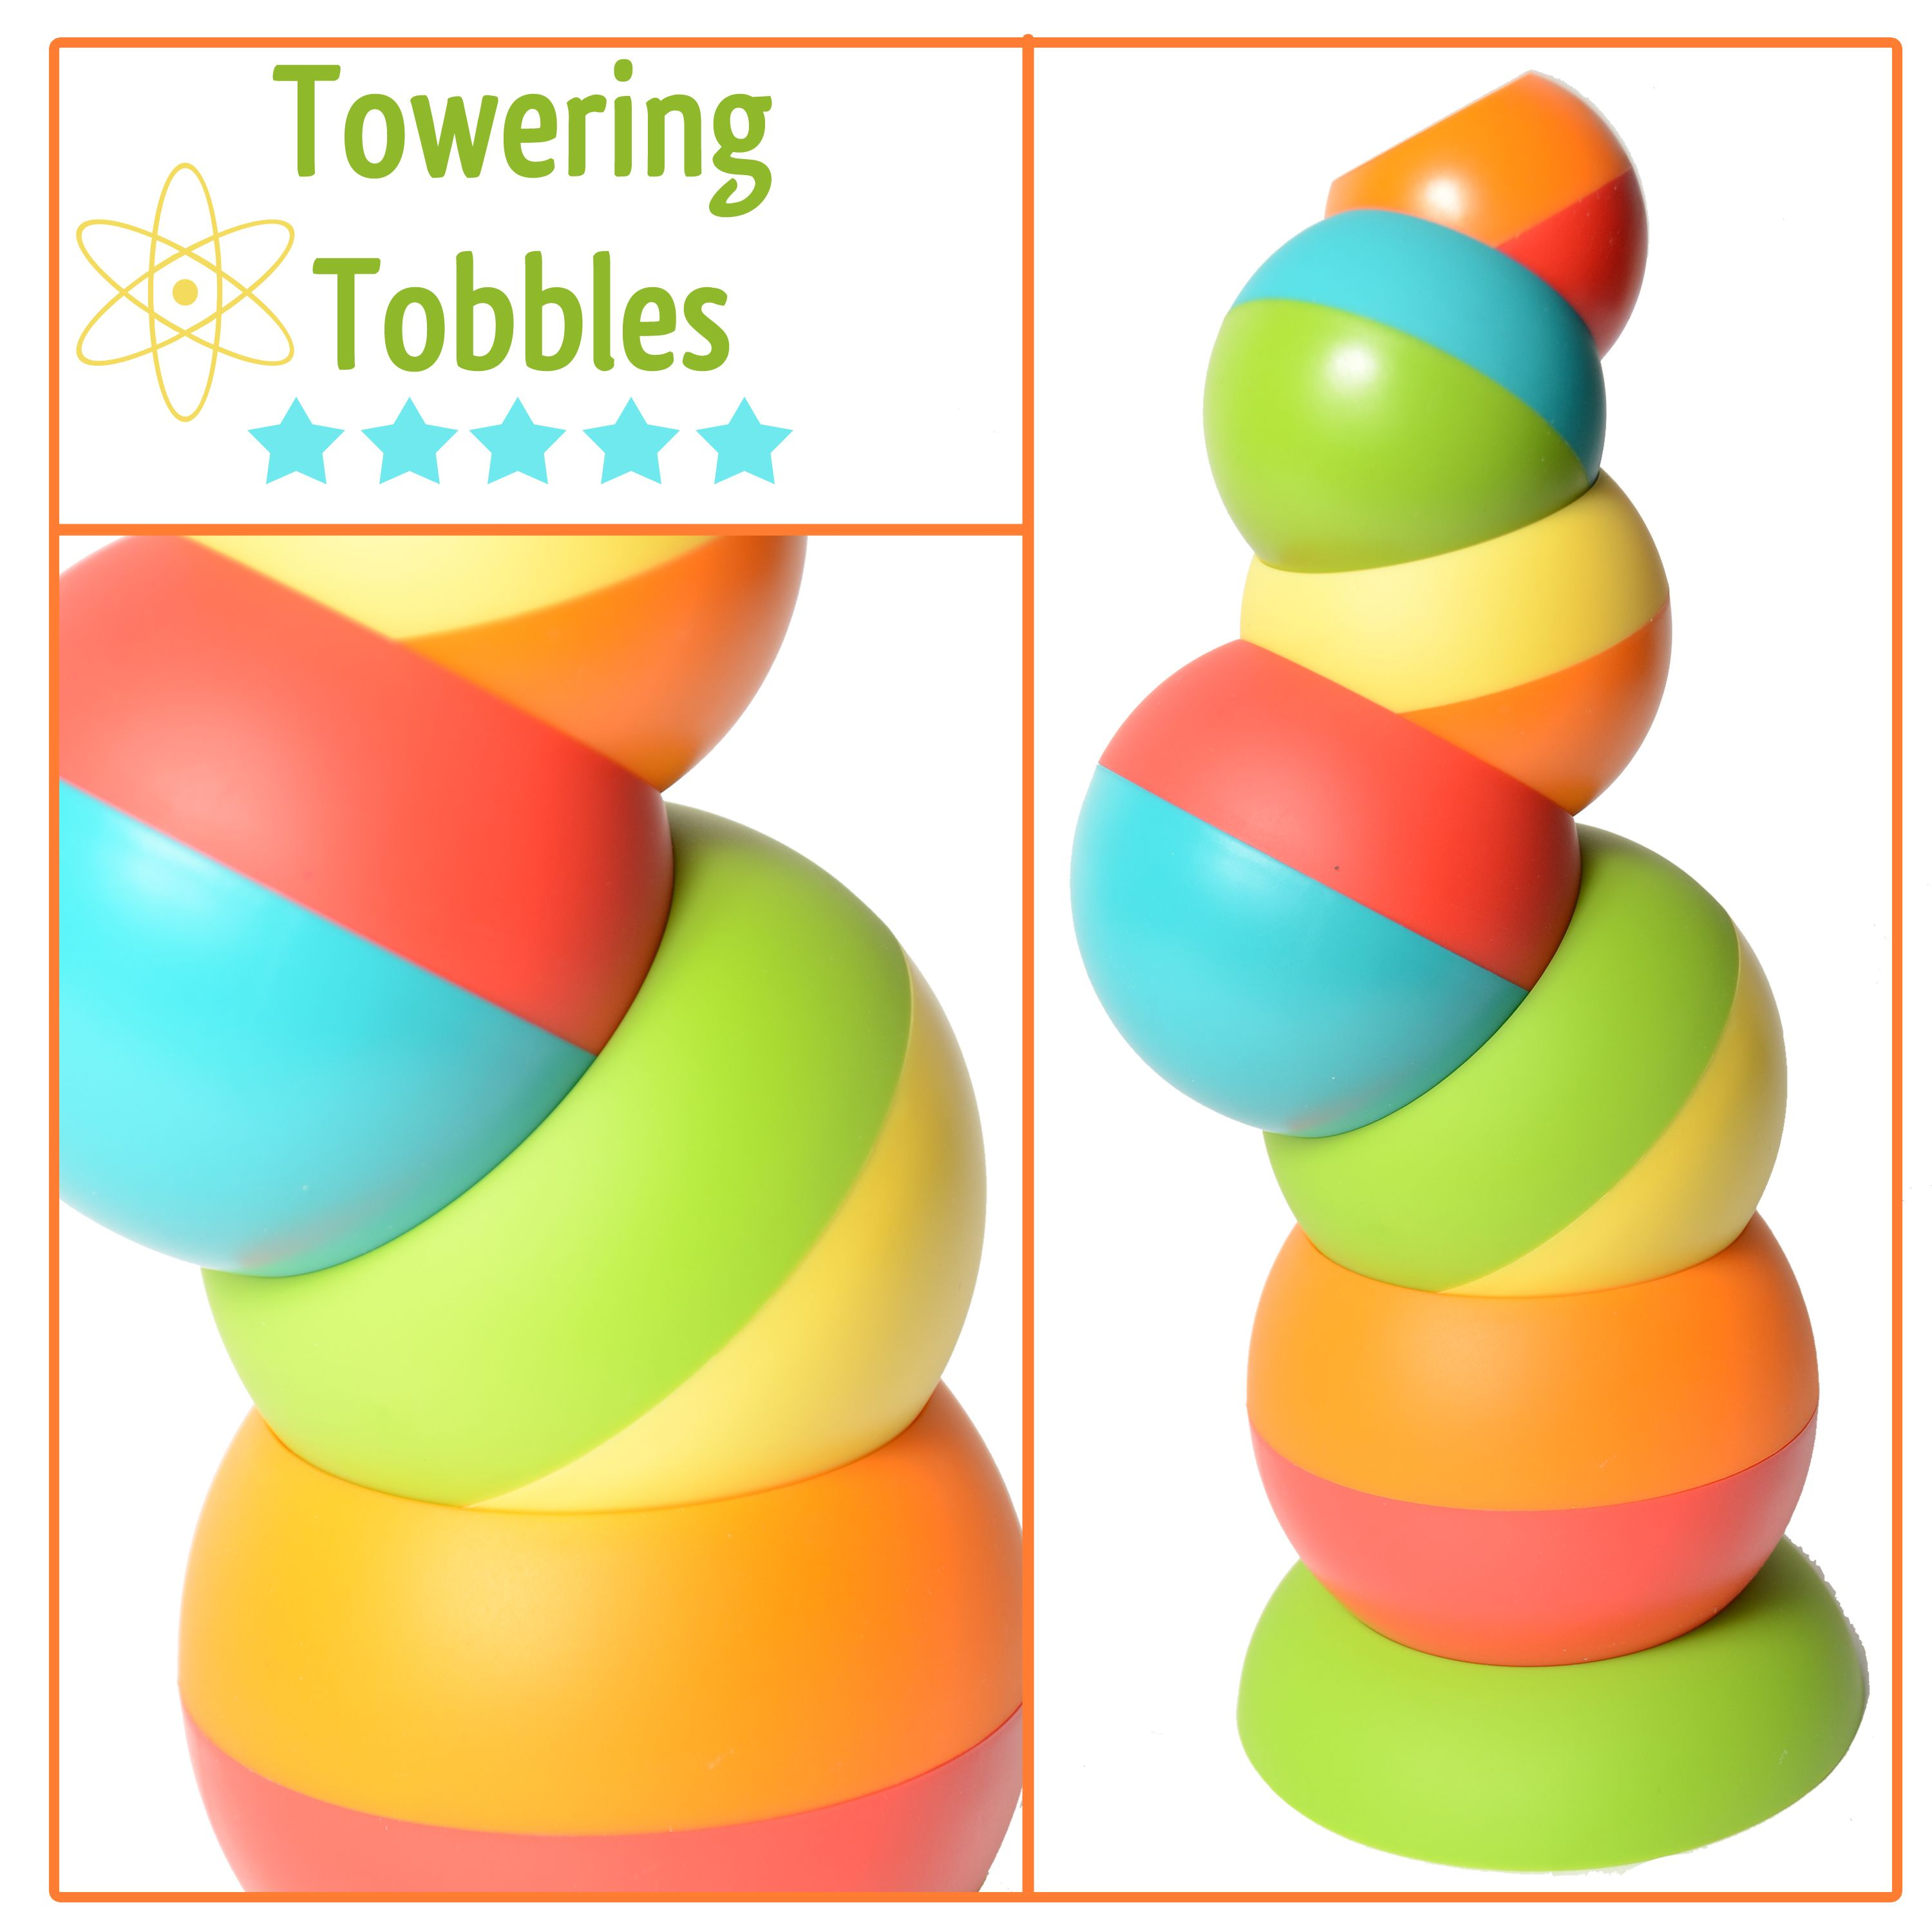 e of the most popular toddler toys right now looks fun